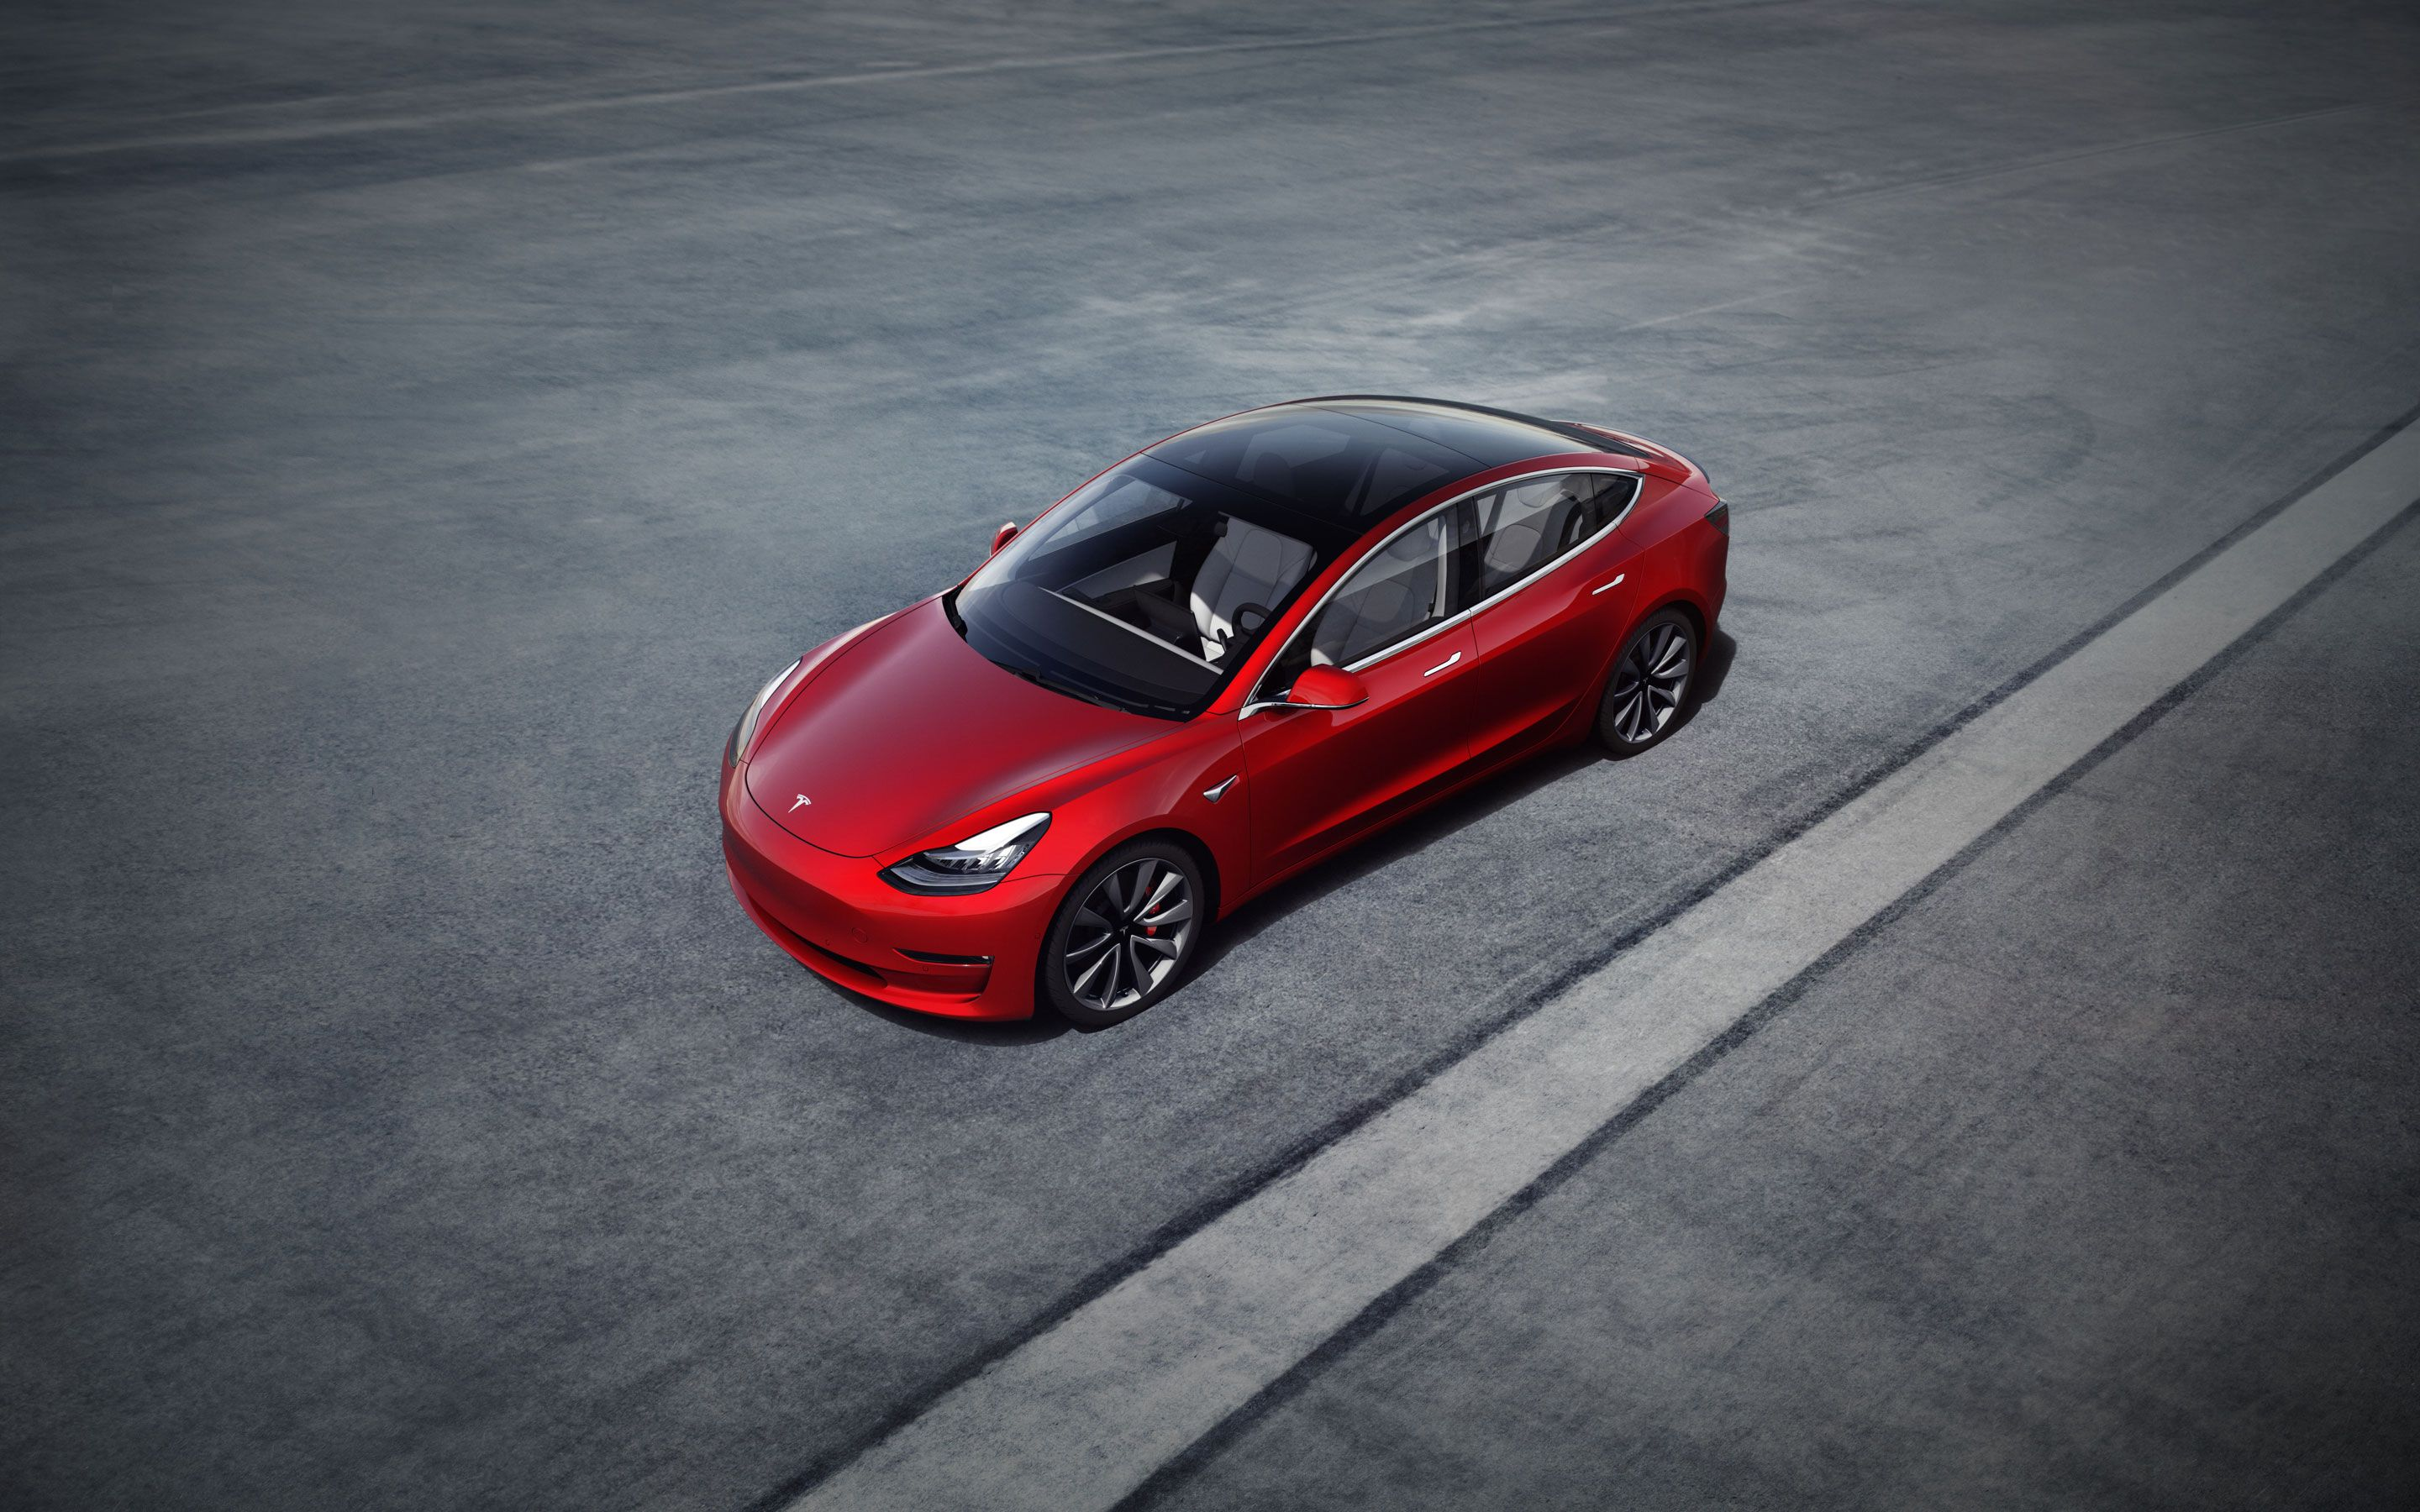 Model 3 Is Designed For Electric Powered Performance With Dual Motor Awd Quick Acceleration Long Range And Fast Charg In 2020 Tesla Car Tesla Model Tesla Car Models